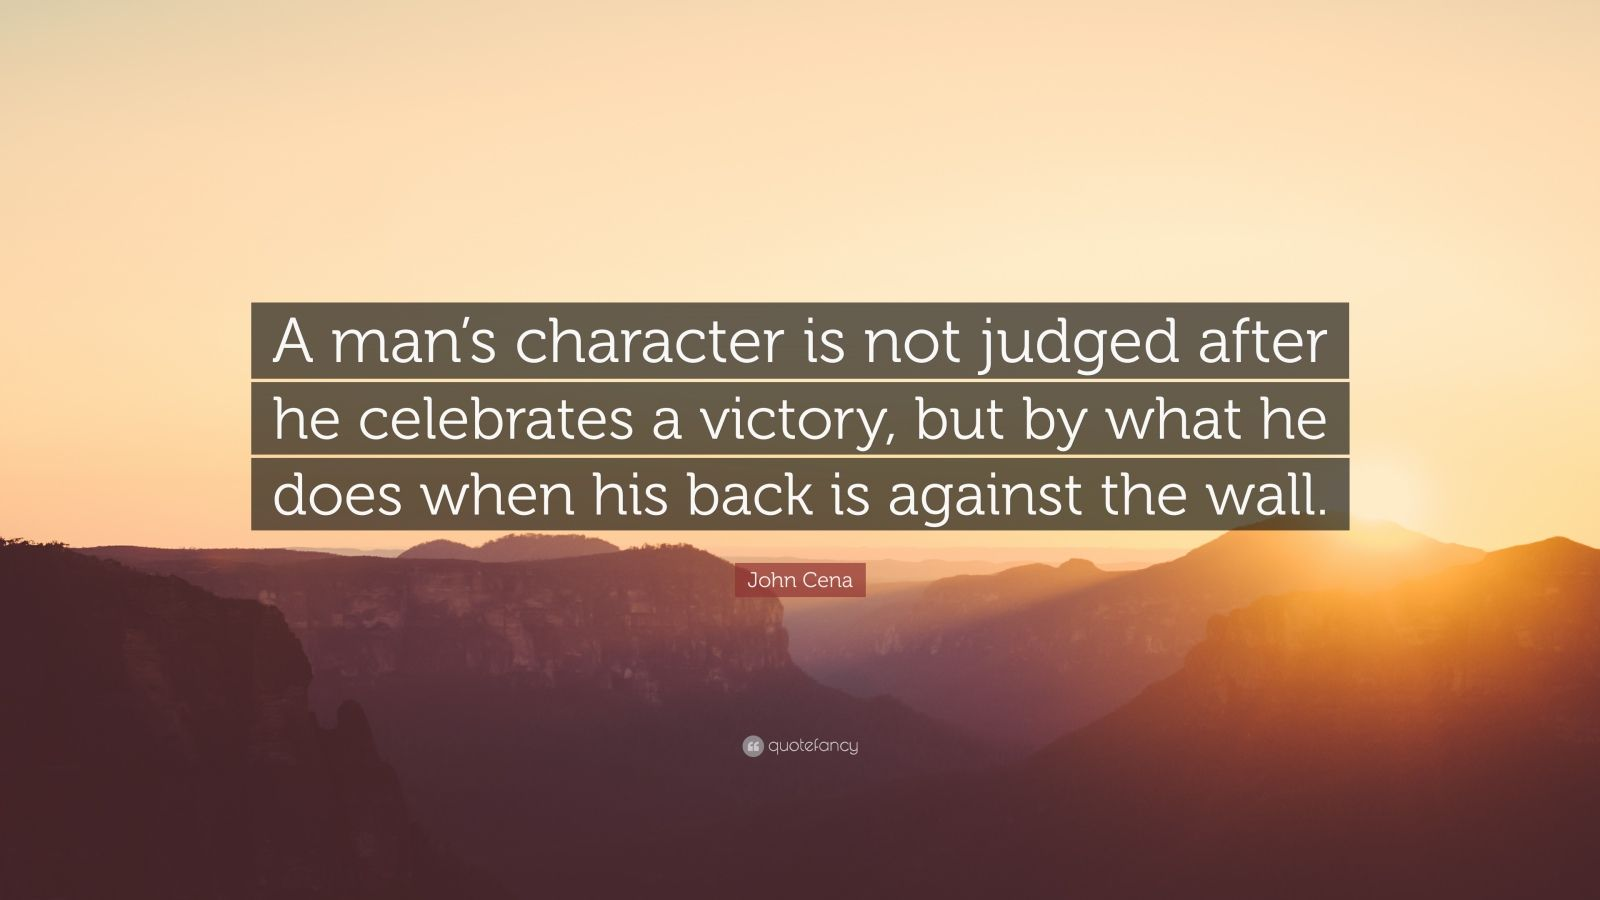 """John Cena Quote: """"A man's character is not judged after he celebrates a victory, but by what he does when his back is against the wall."""""""